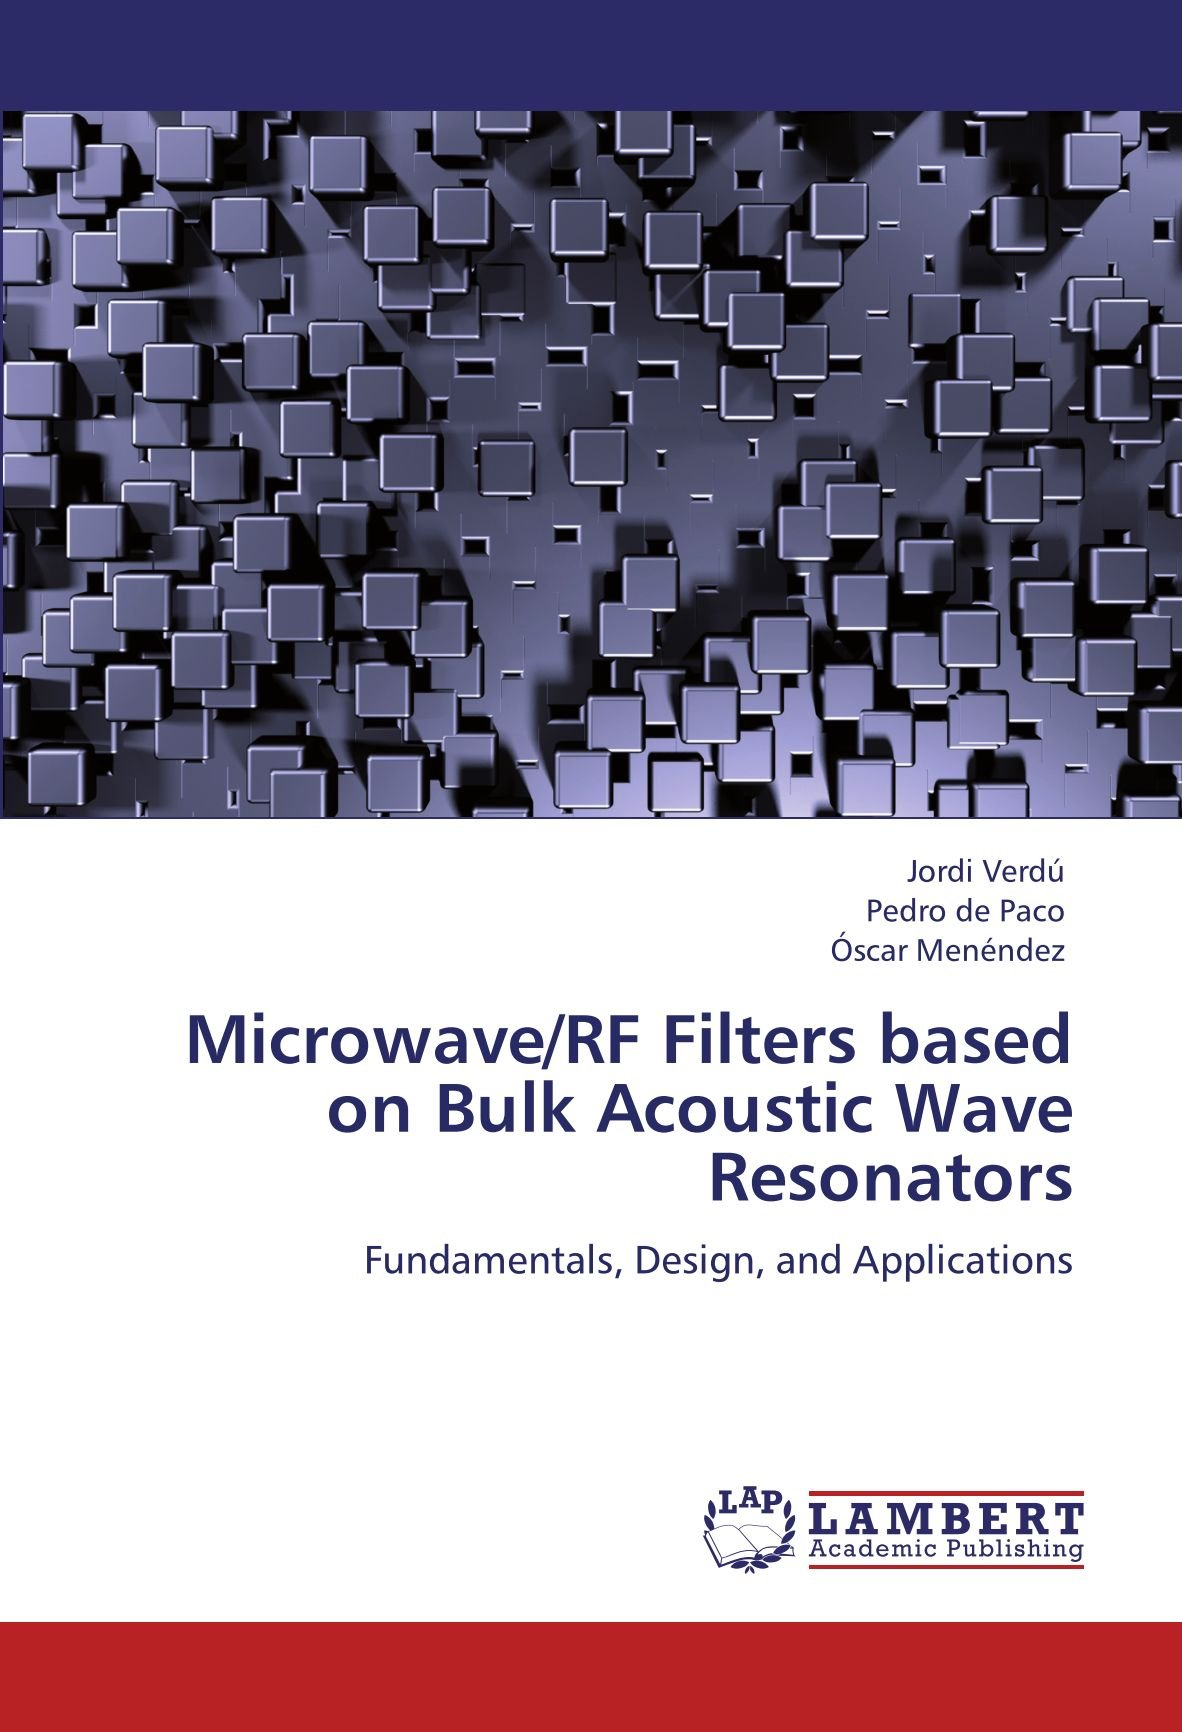 Download Microwave/RF Filters based on Bulk Acoustic Wave Resonators: Fundamentals, Design, and Applications PDF Text fb2 book